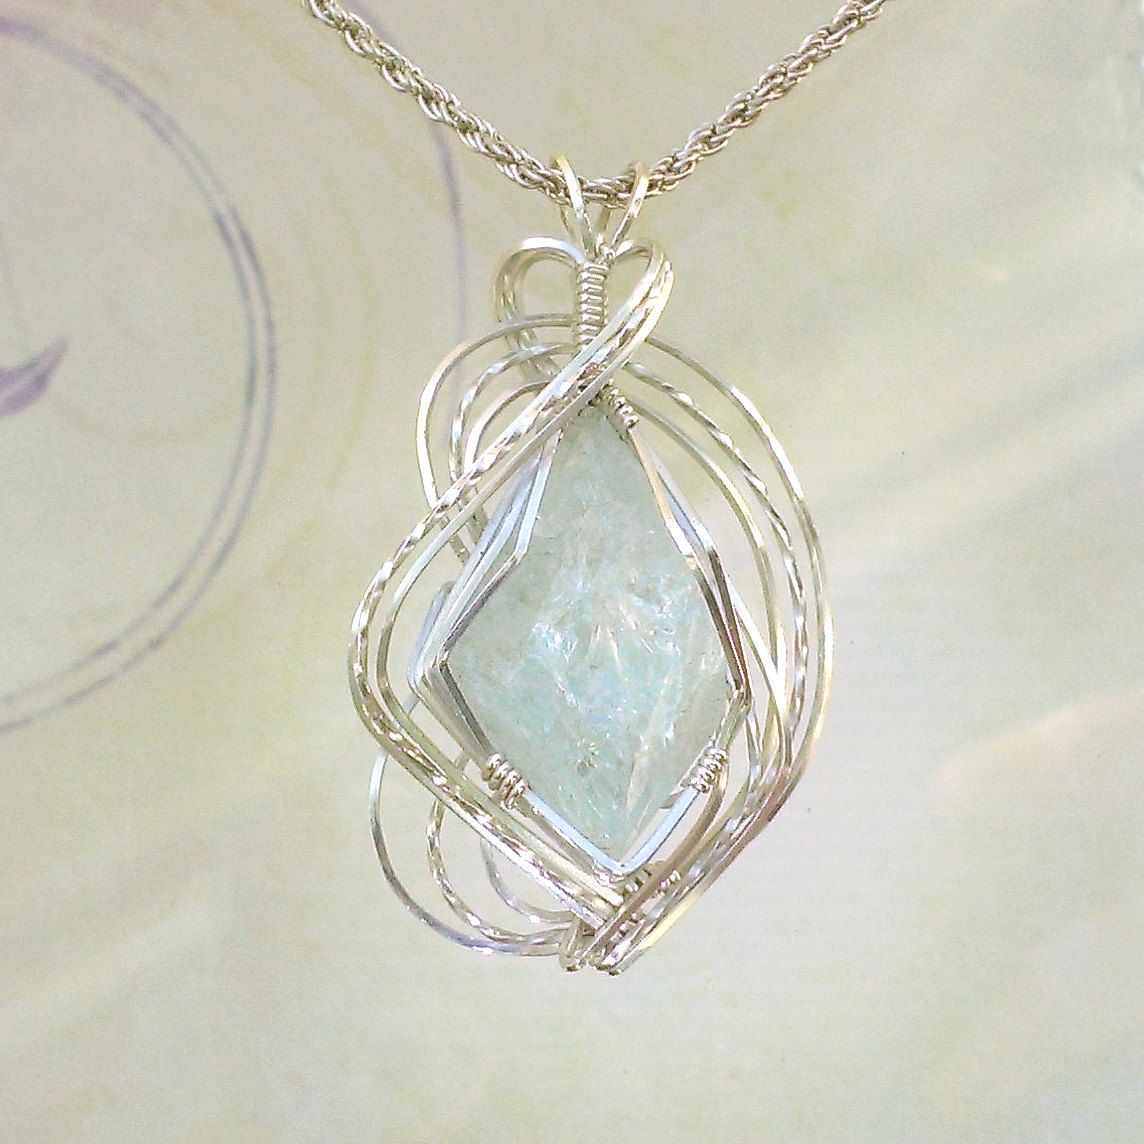 Aquamarine Crystal Pendant Necklace Wire Wrapped Jewelry Handmade in ...